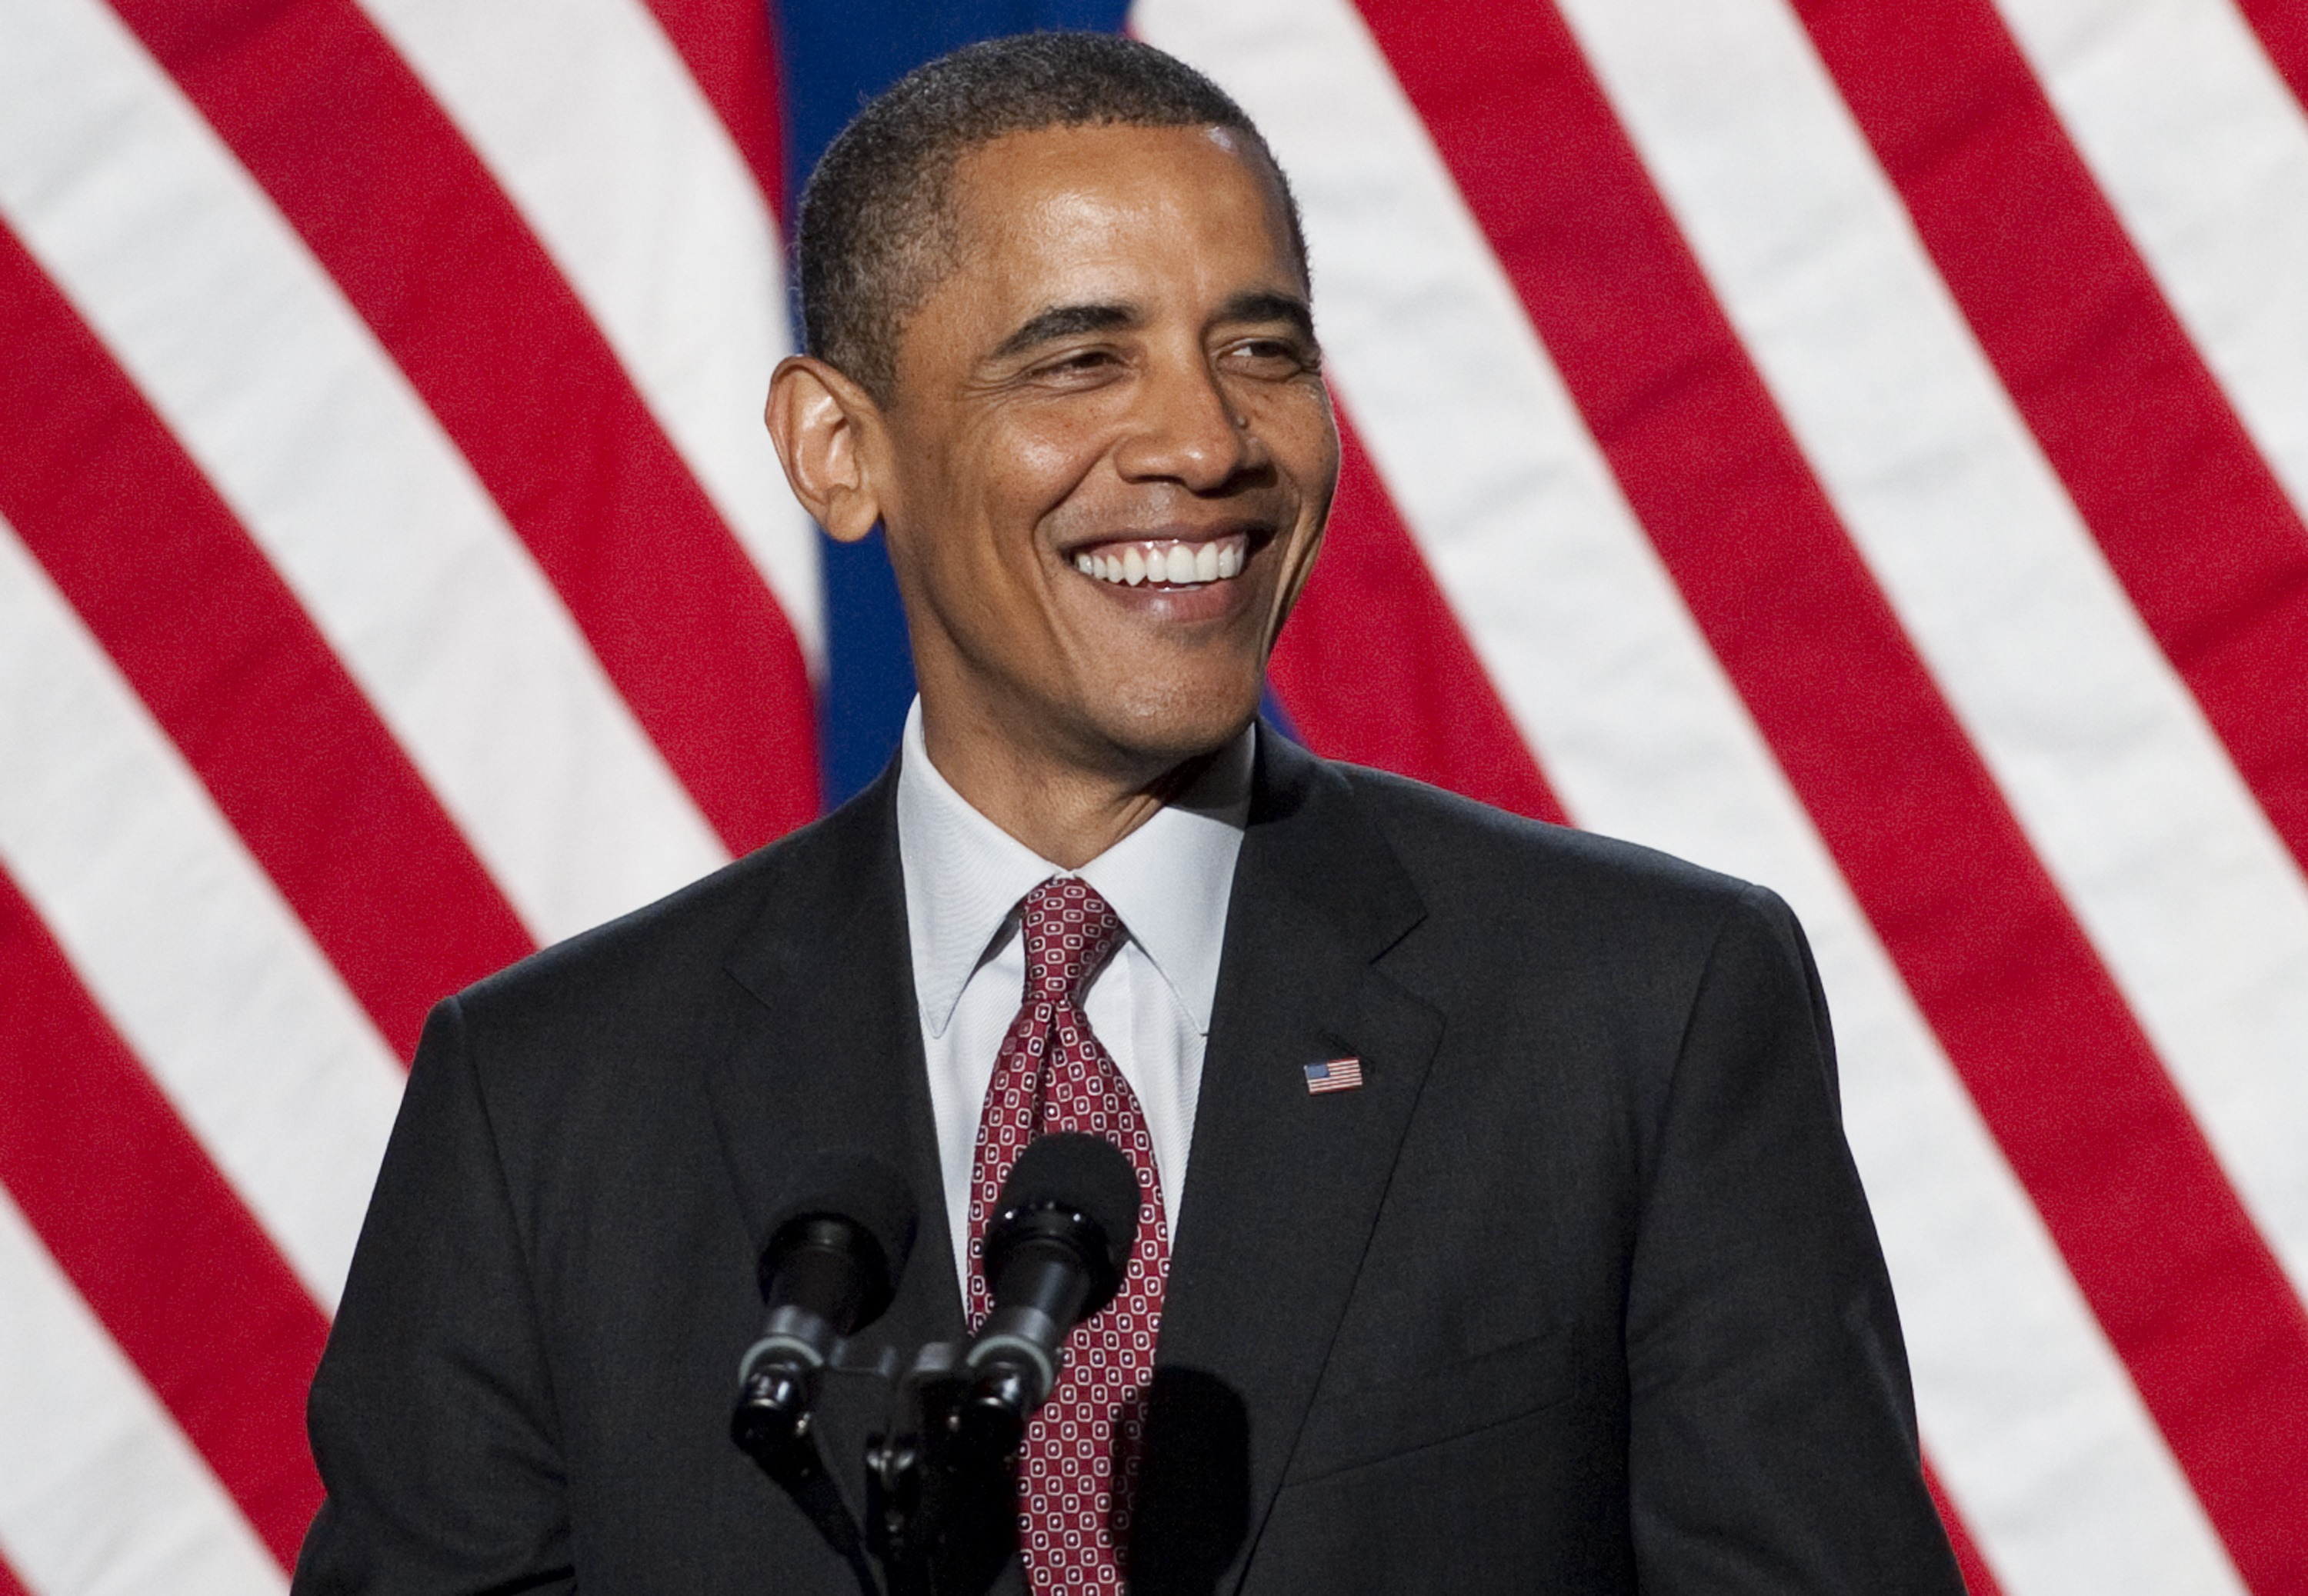 Barack Obama gets his own Twitter account